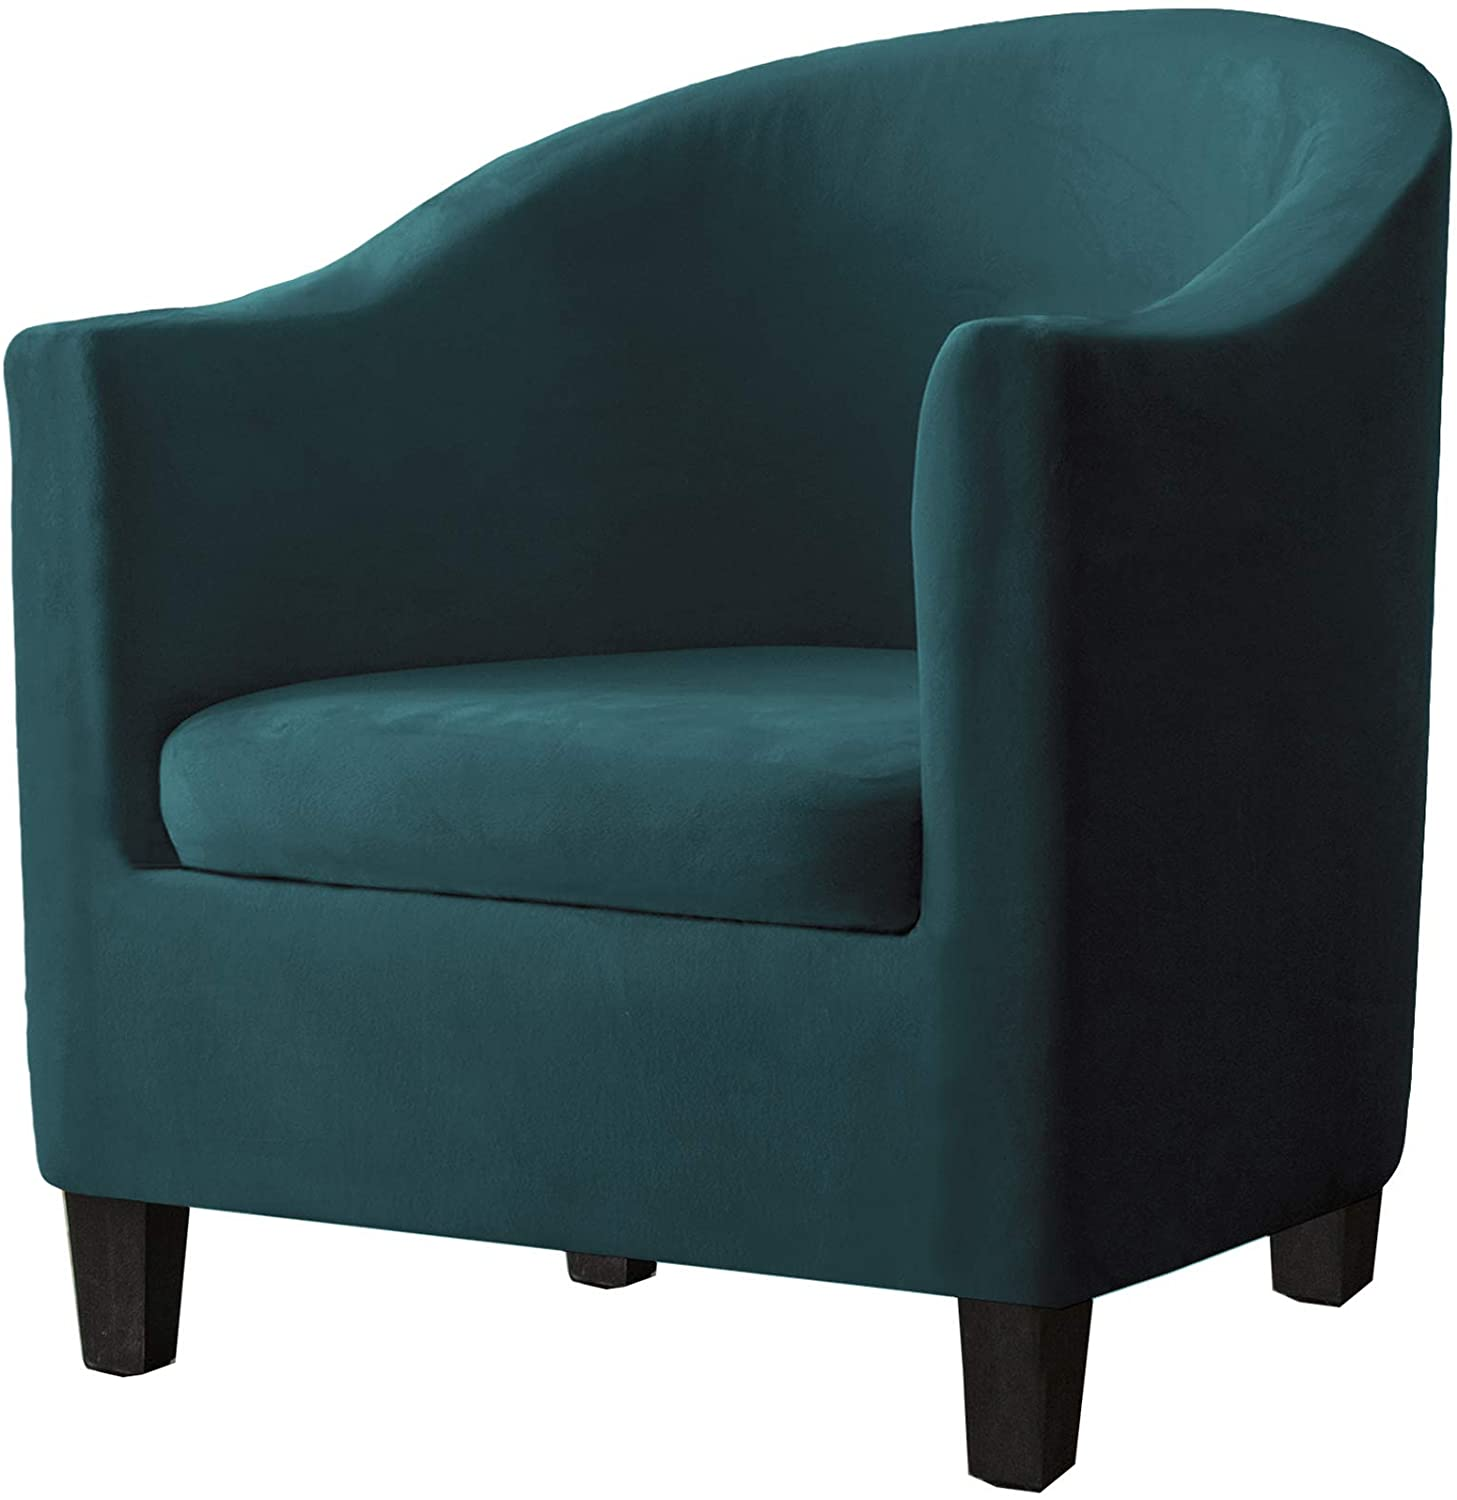 Cash special price Max 88% OFF SHENGYIJING 2 Piece Velvet Tub Spande Chair for Armchairs Covers